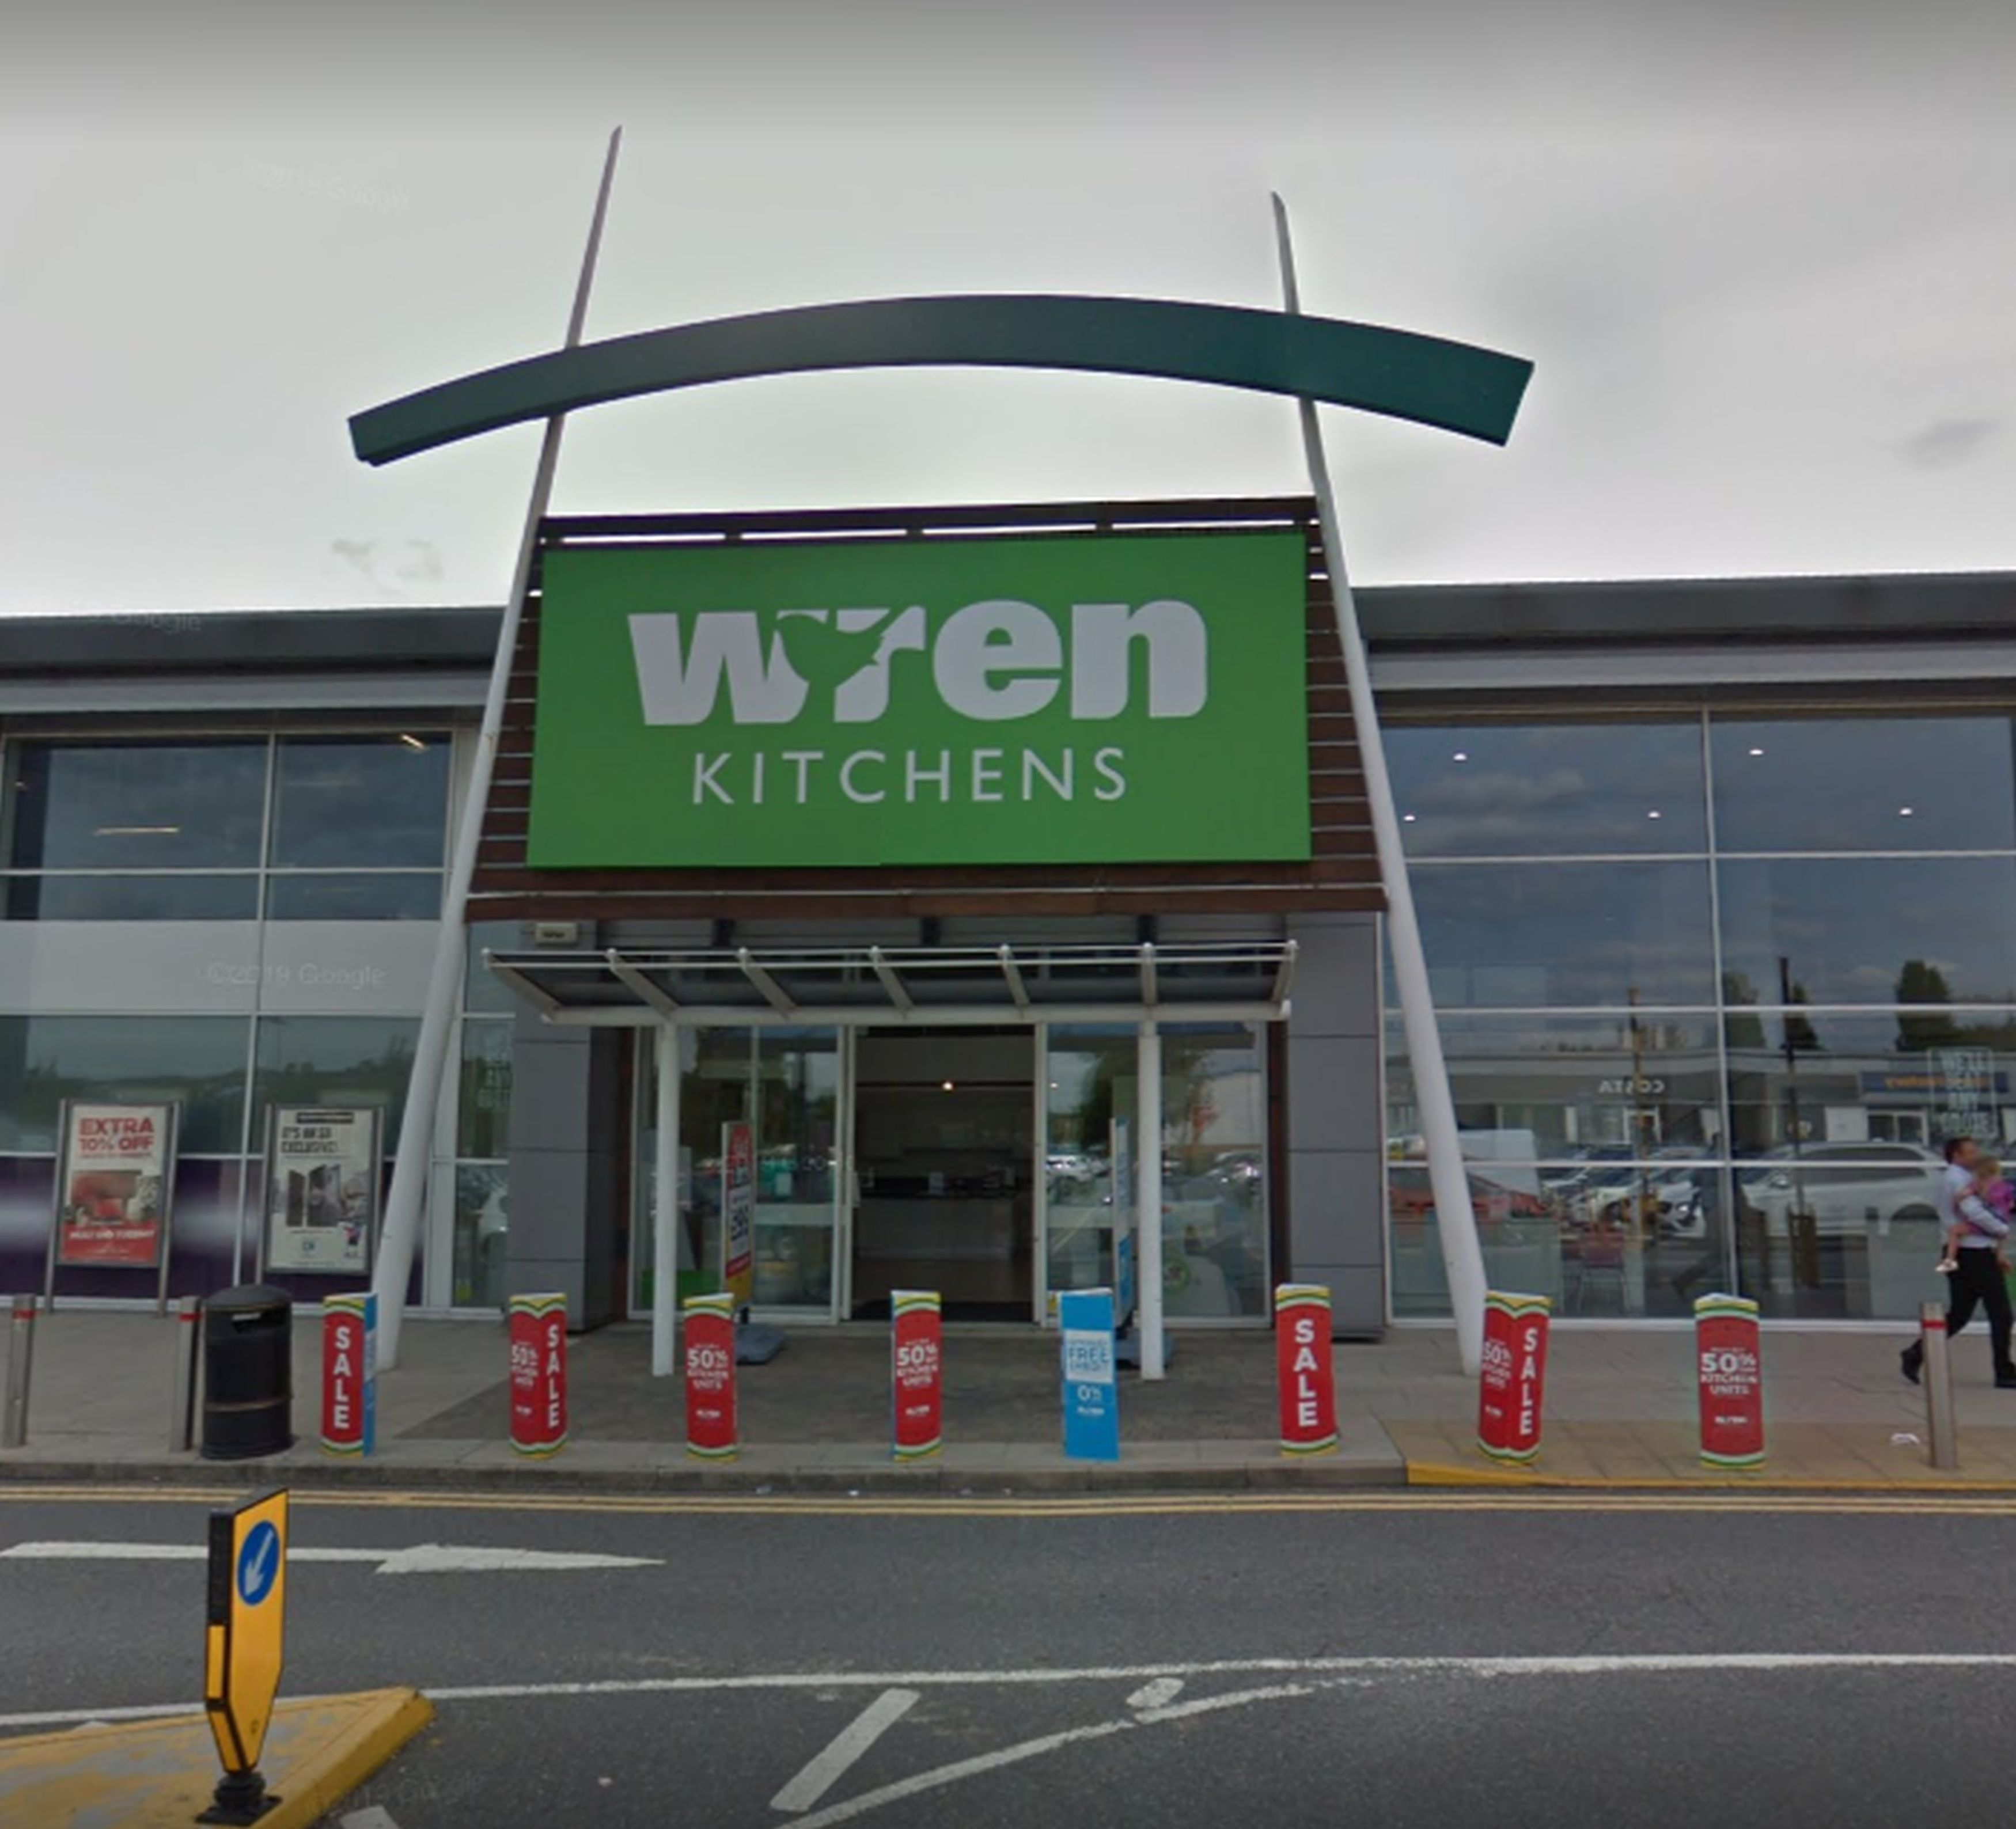 Wren Kitchens store where delivery driver was accused of being racist